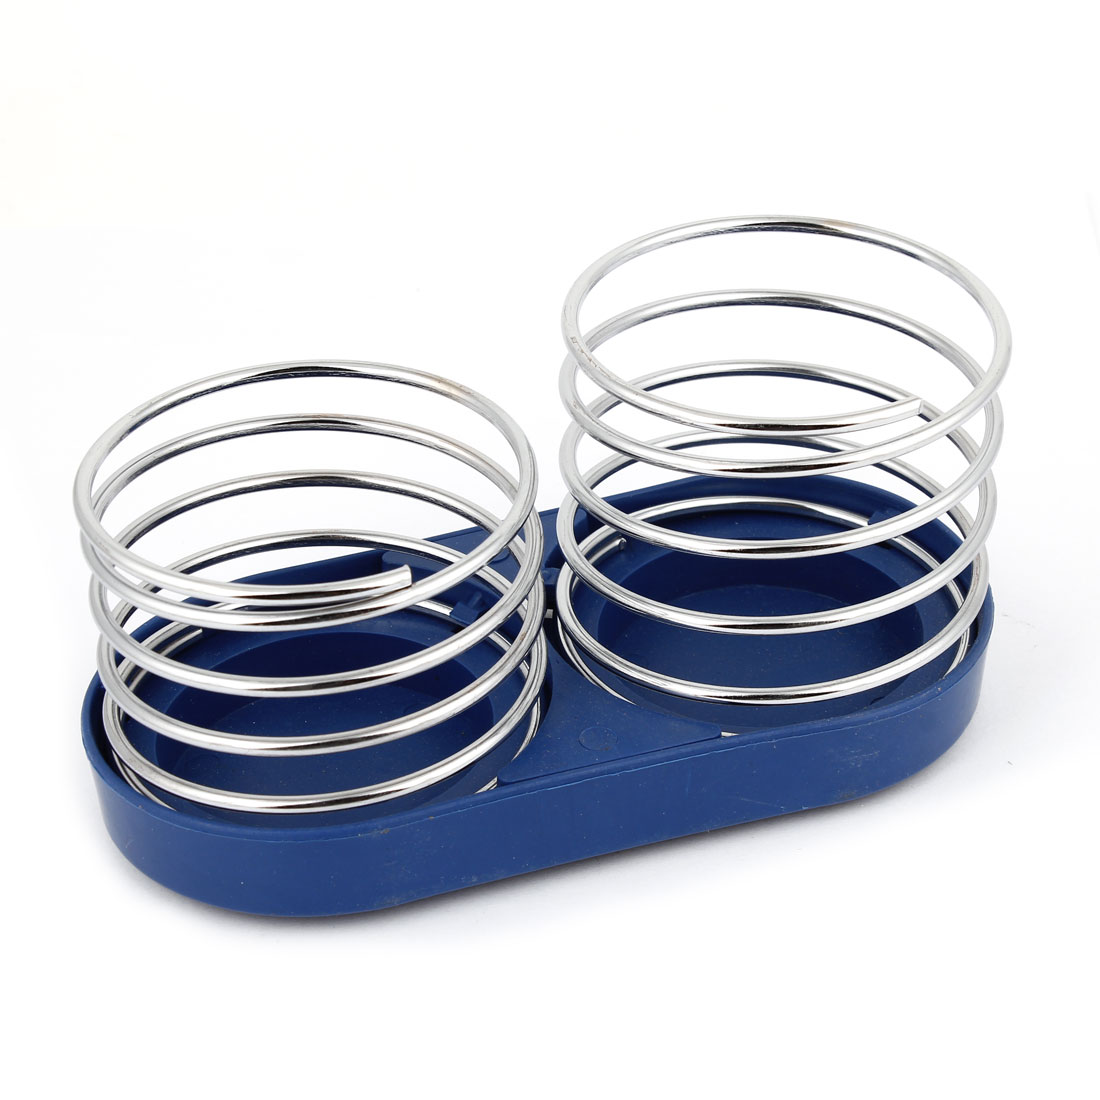 Blue Silver Tone Dual Spring Style Cup Can Drink Bottle Holder Stand for Car